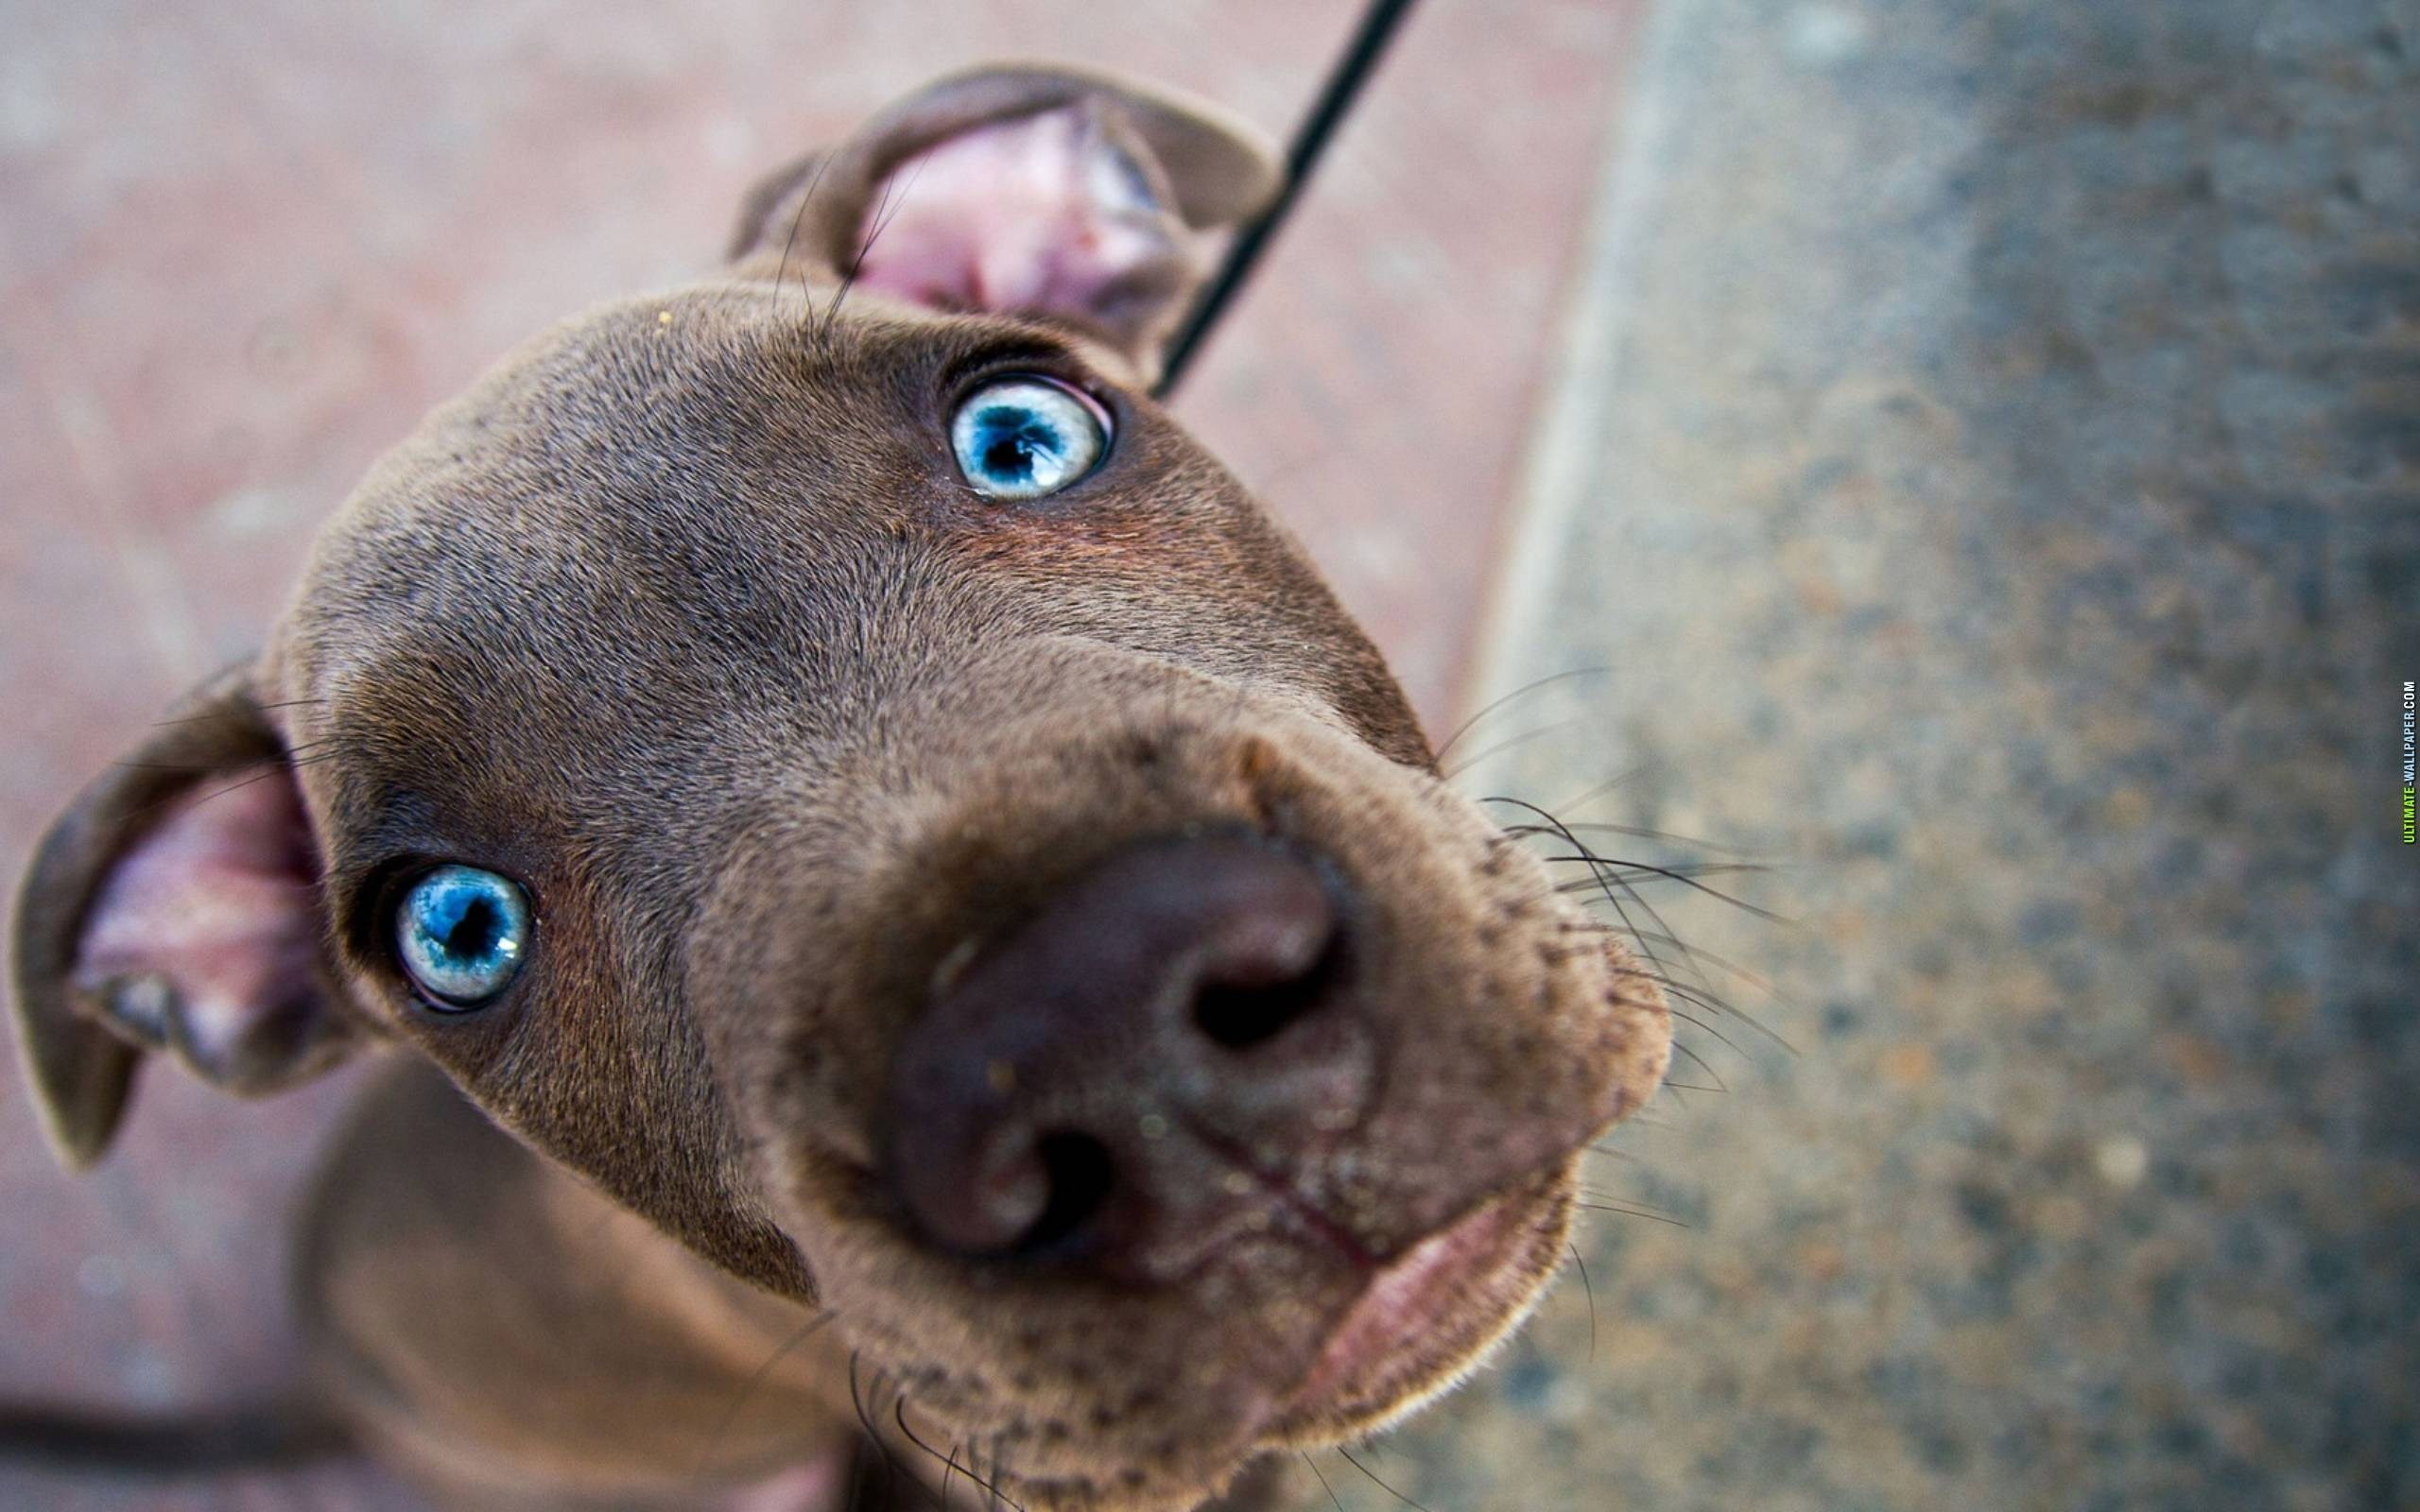 2560x1600 Desktop wallpapers Blue-eyed Weimaraner dog - photos in high quality and  resolution